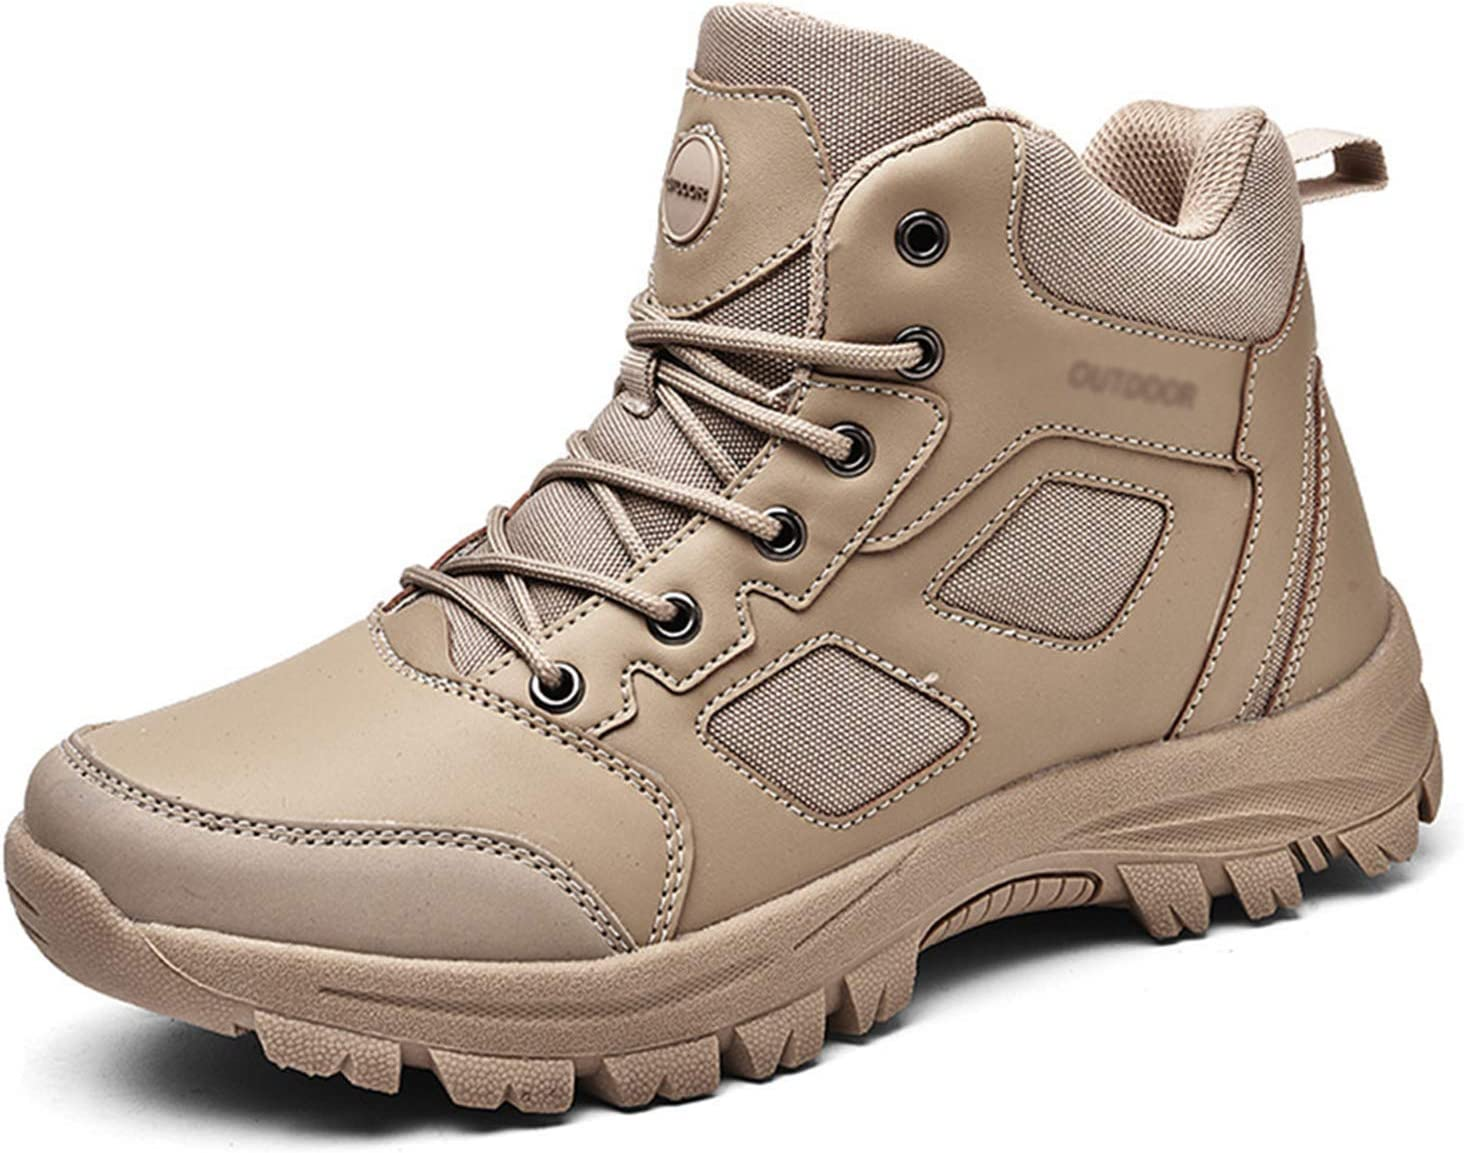 Outdoor Men's Combat Boots,Ultralight Military Boots Breathable Hiking Boots Bare Boots Desert Camping Sneakers,Durable Non-Slip Hiking Shoes